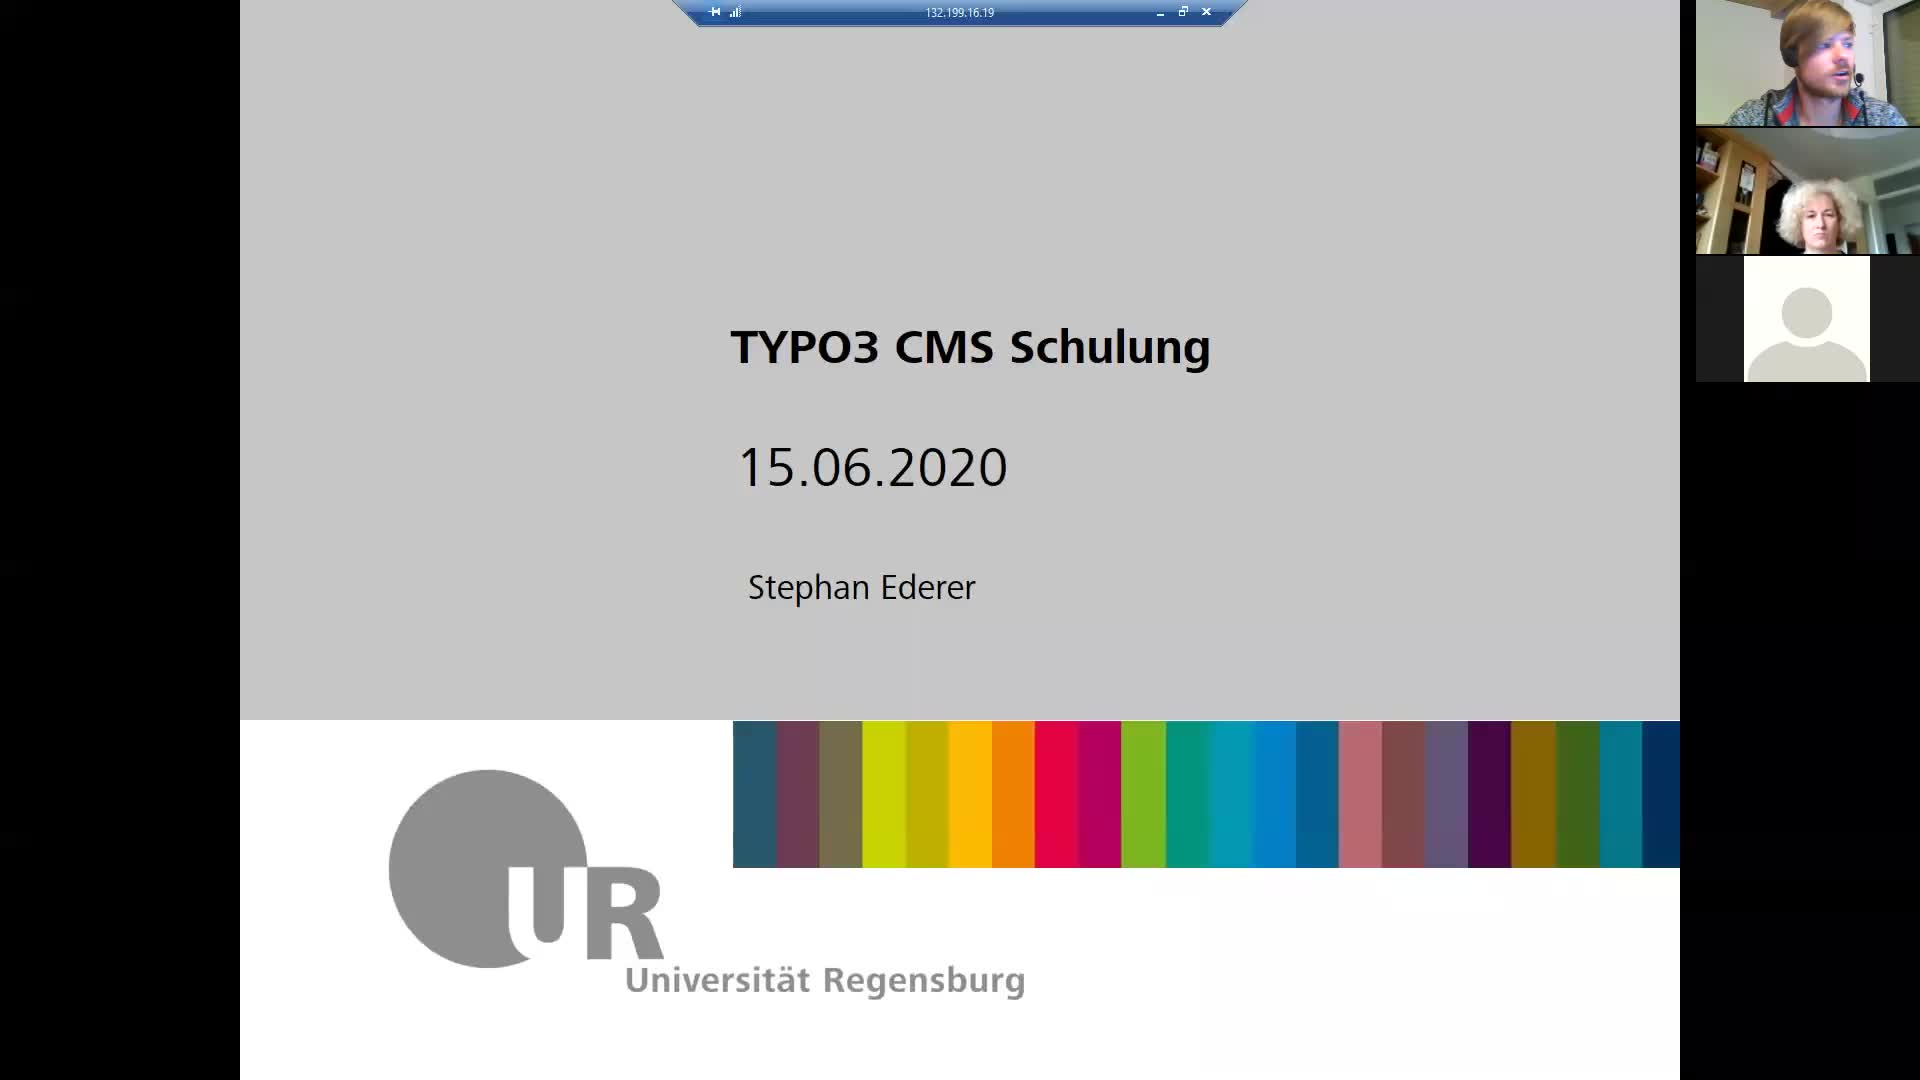 Typo3-RZ-Wiwi-Schulung Tag 1 - 15.06.2020